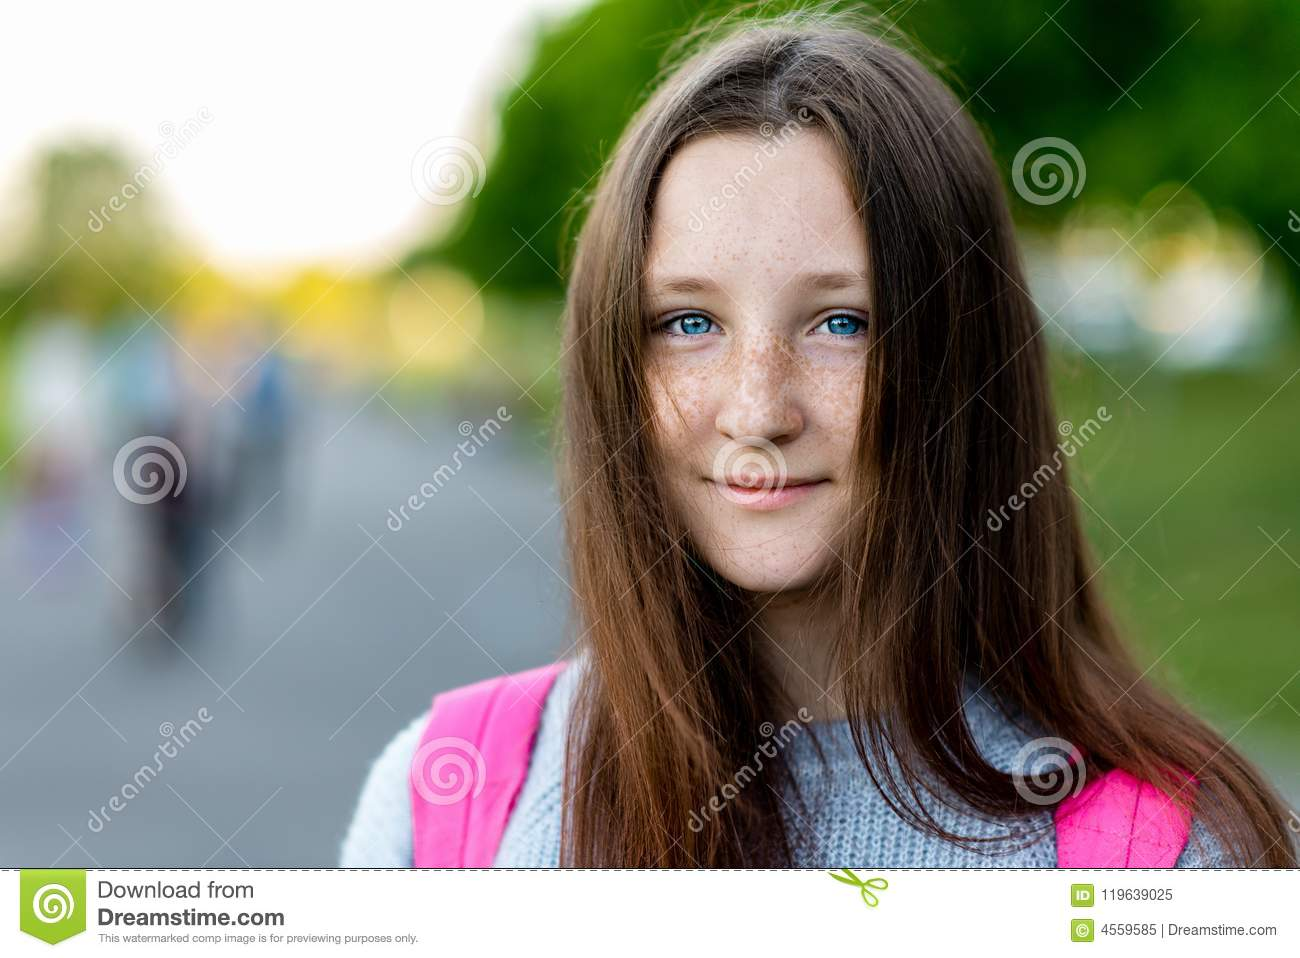 A beautiful child, teenage girl. Summer in nature. Close-up portrait. Blue eyes freckles on face. Smiles happily. Free